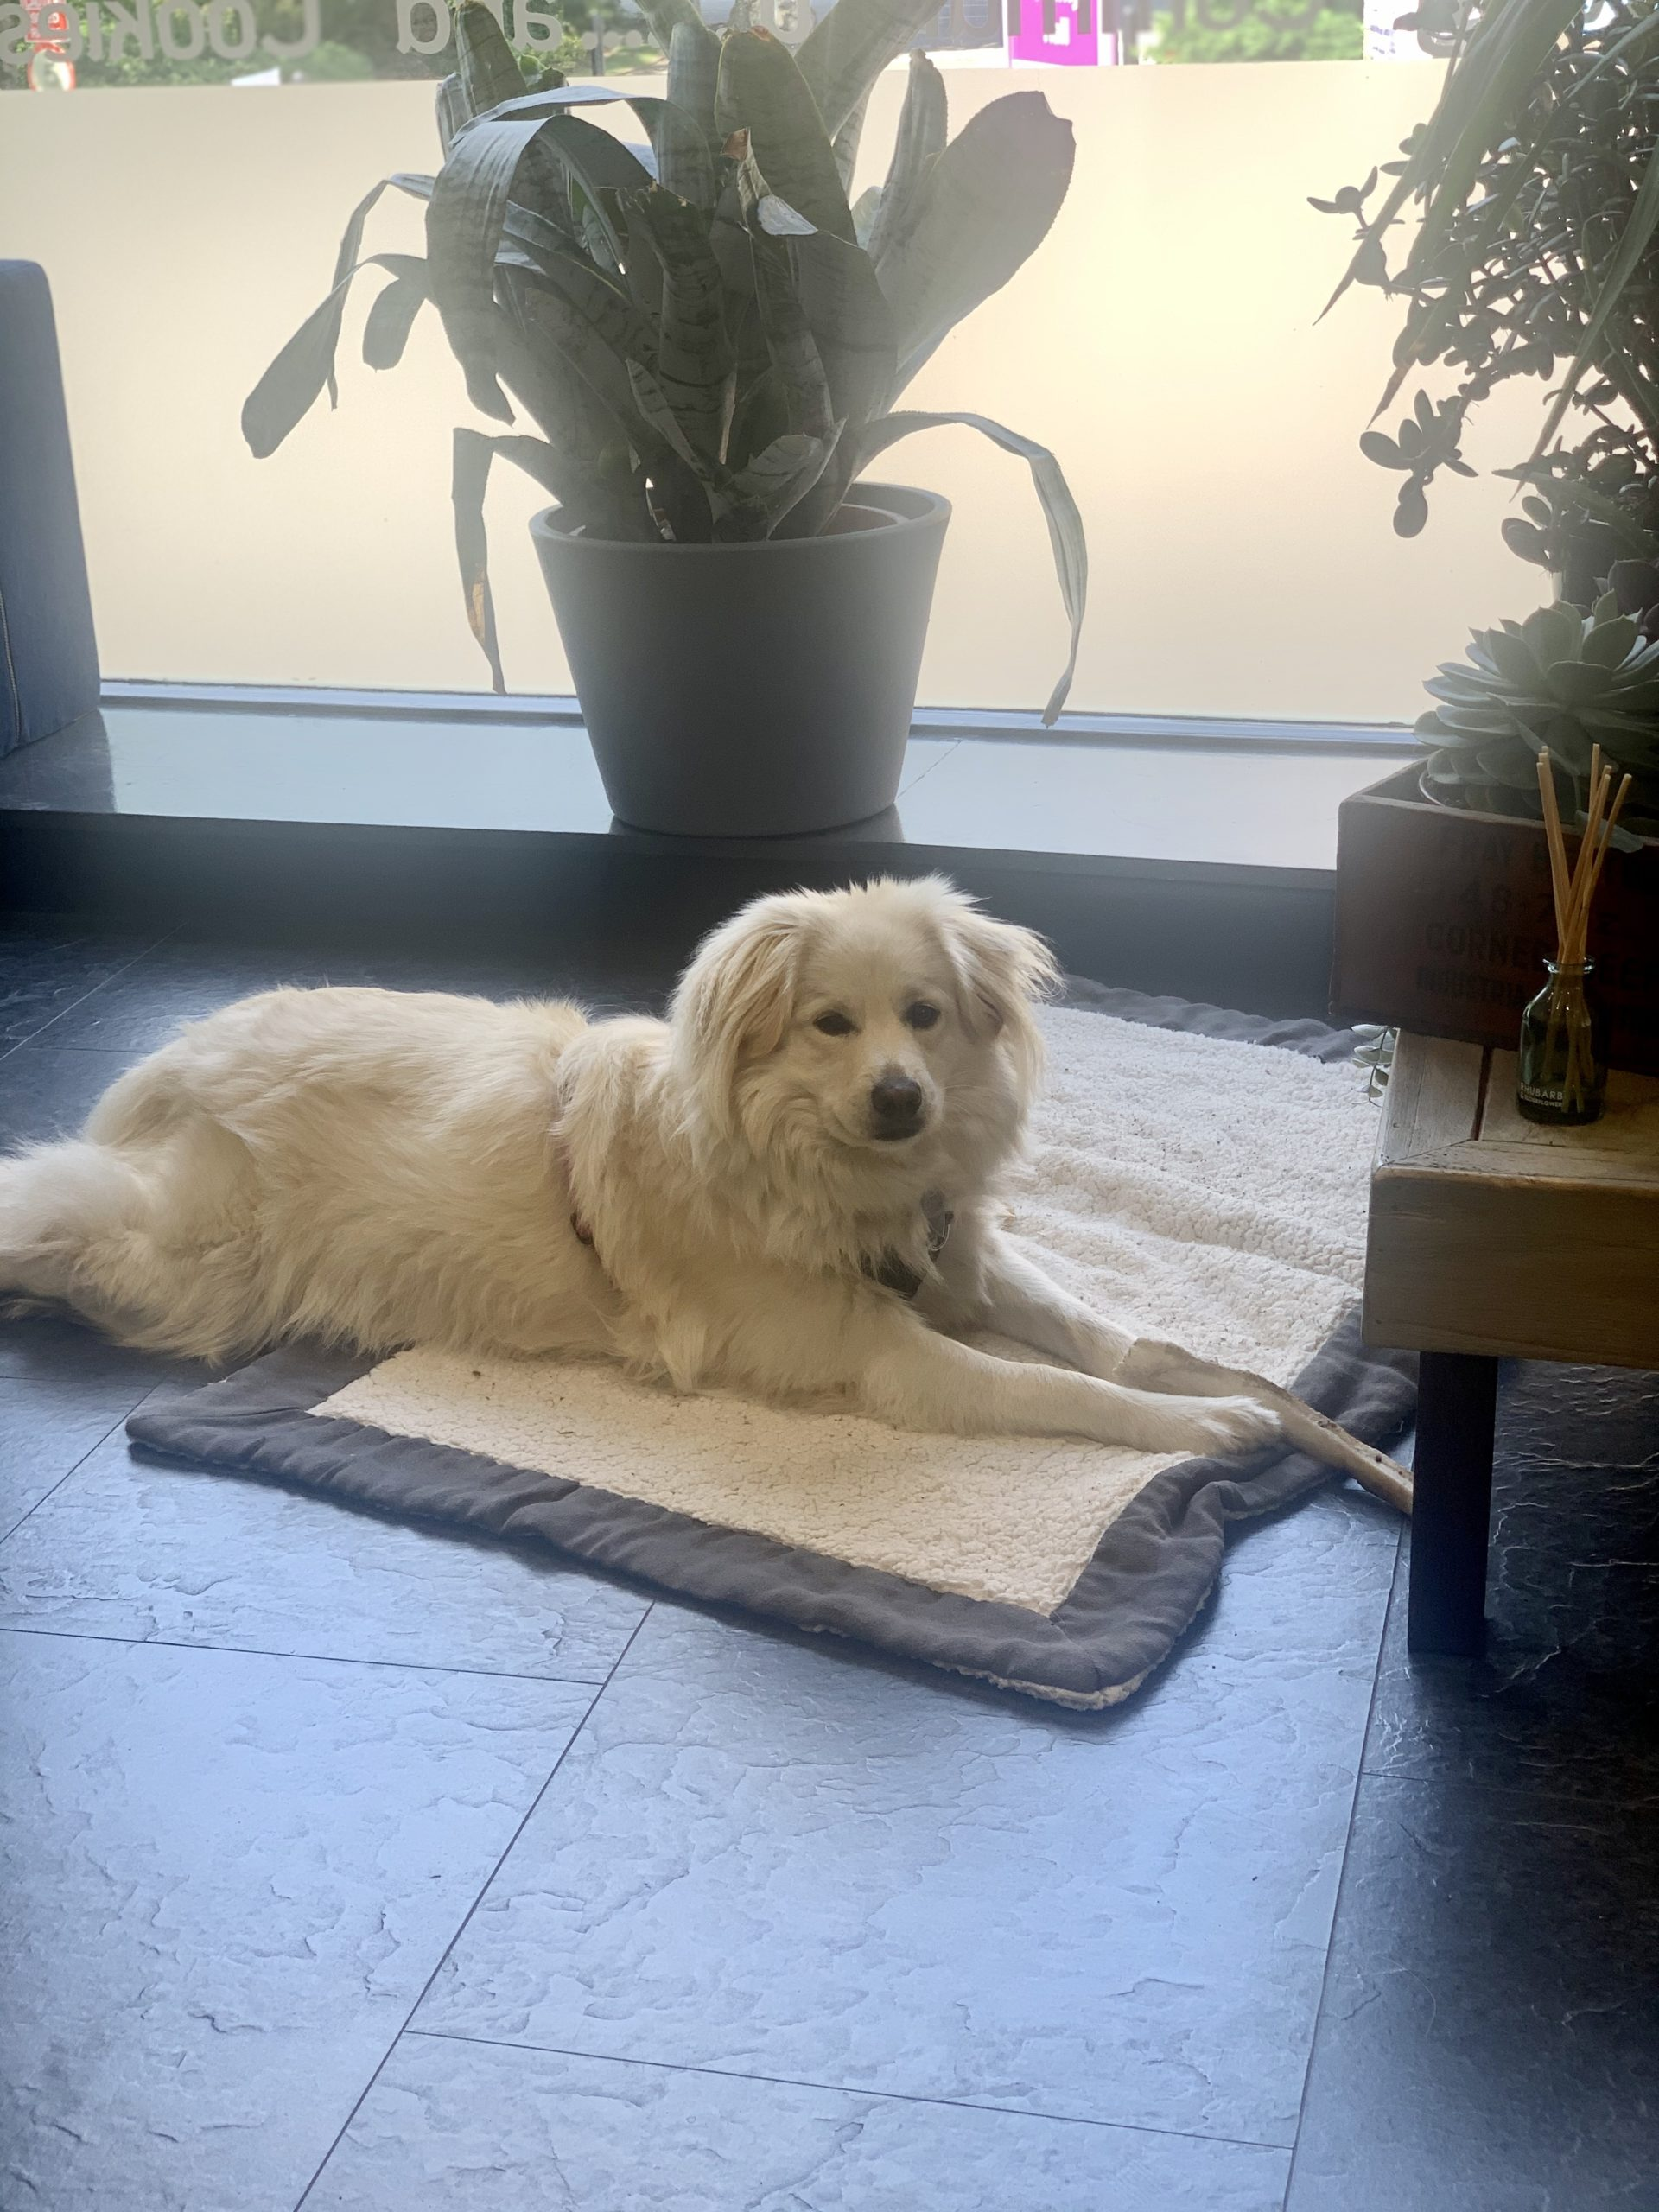 Cookie the dog at Coworking Corner